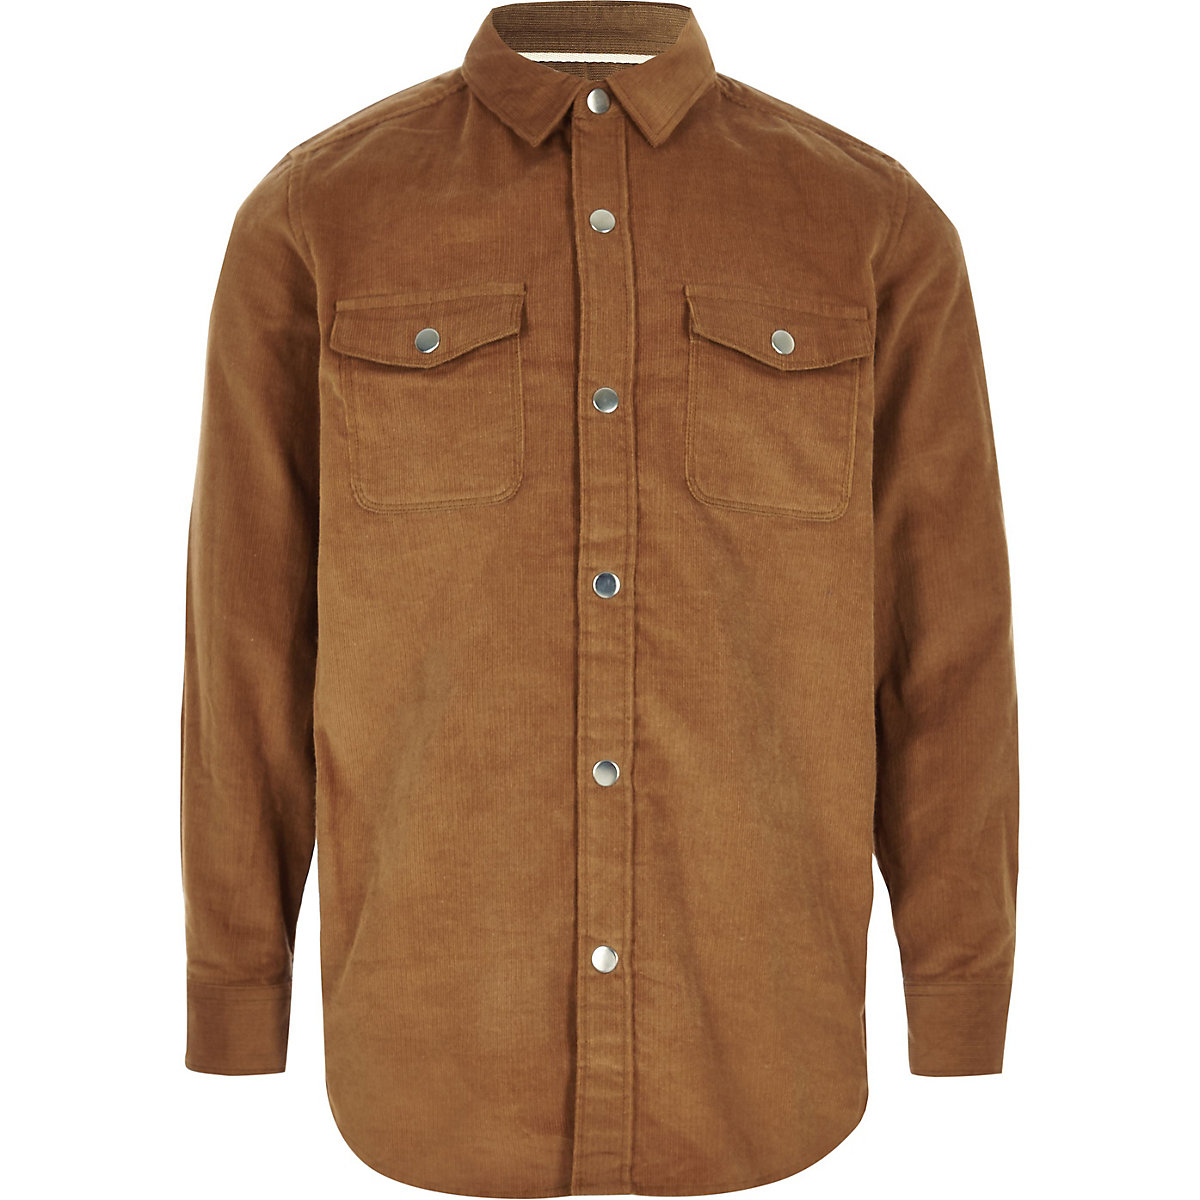 Boys light brown cord shirt